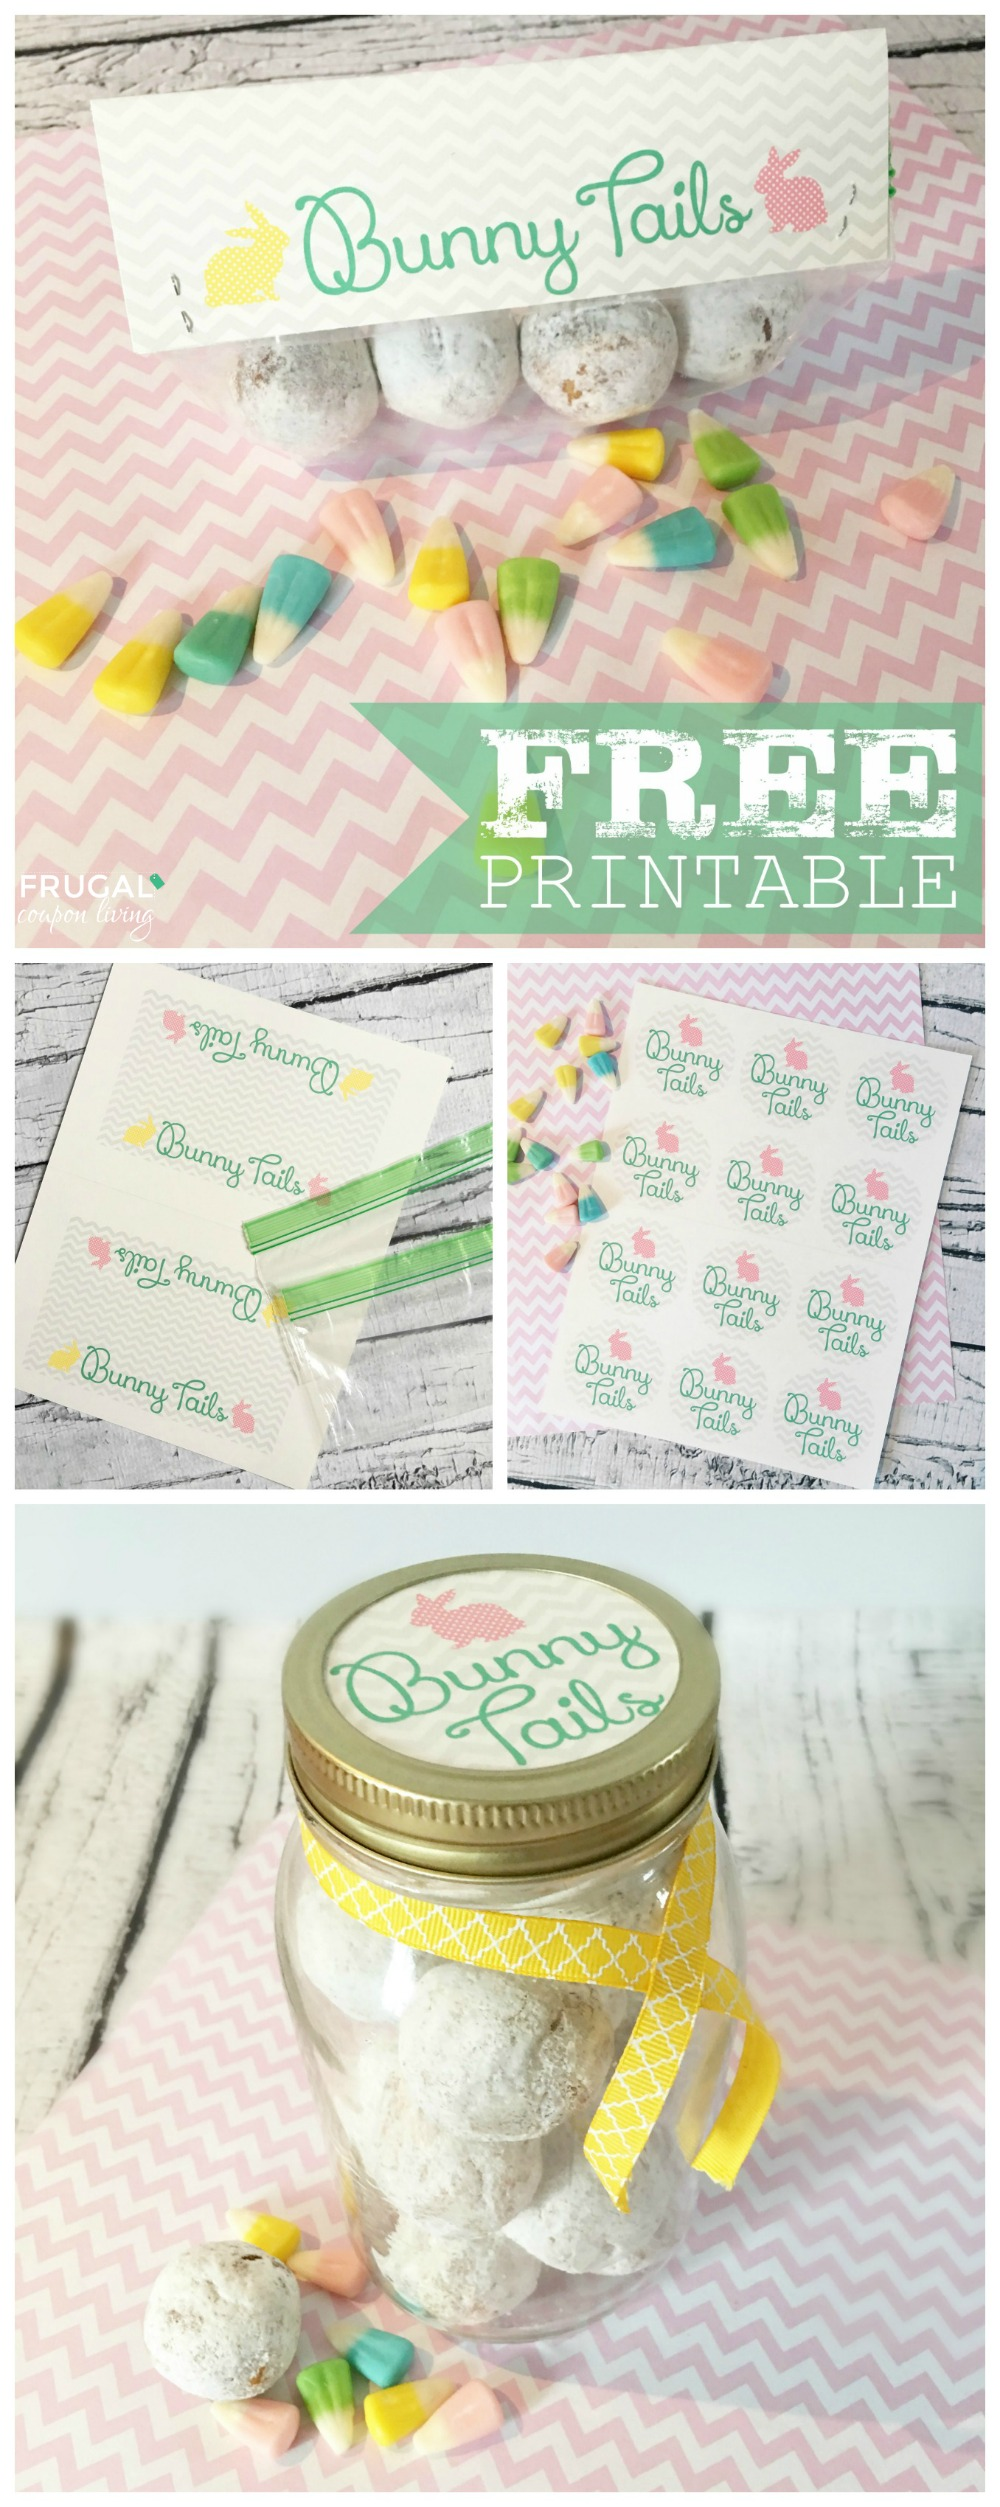 Bunny-Tails-Printable-Frugal-Coupon-Living